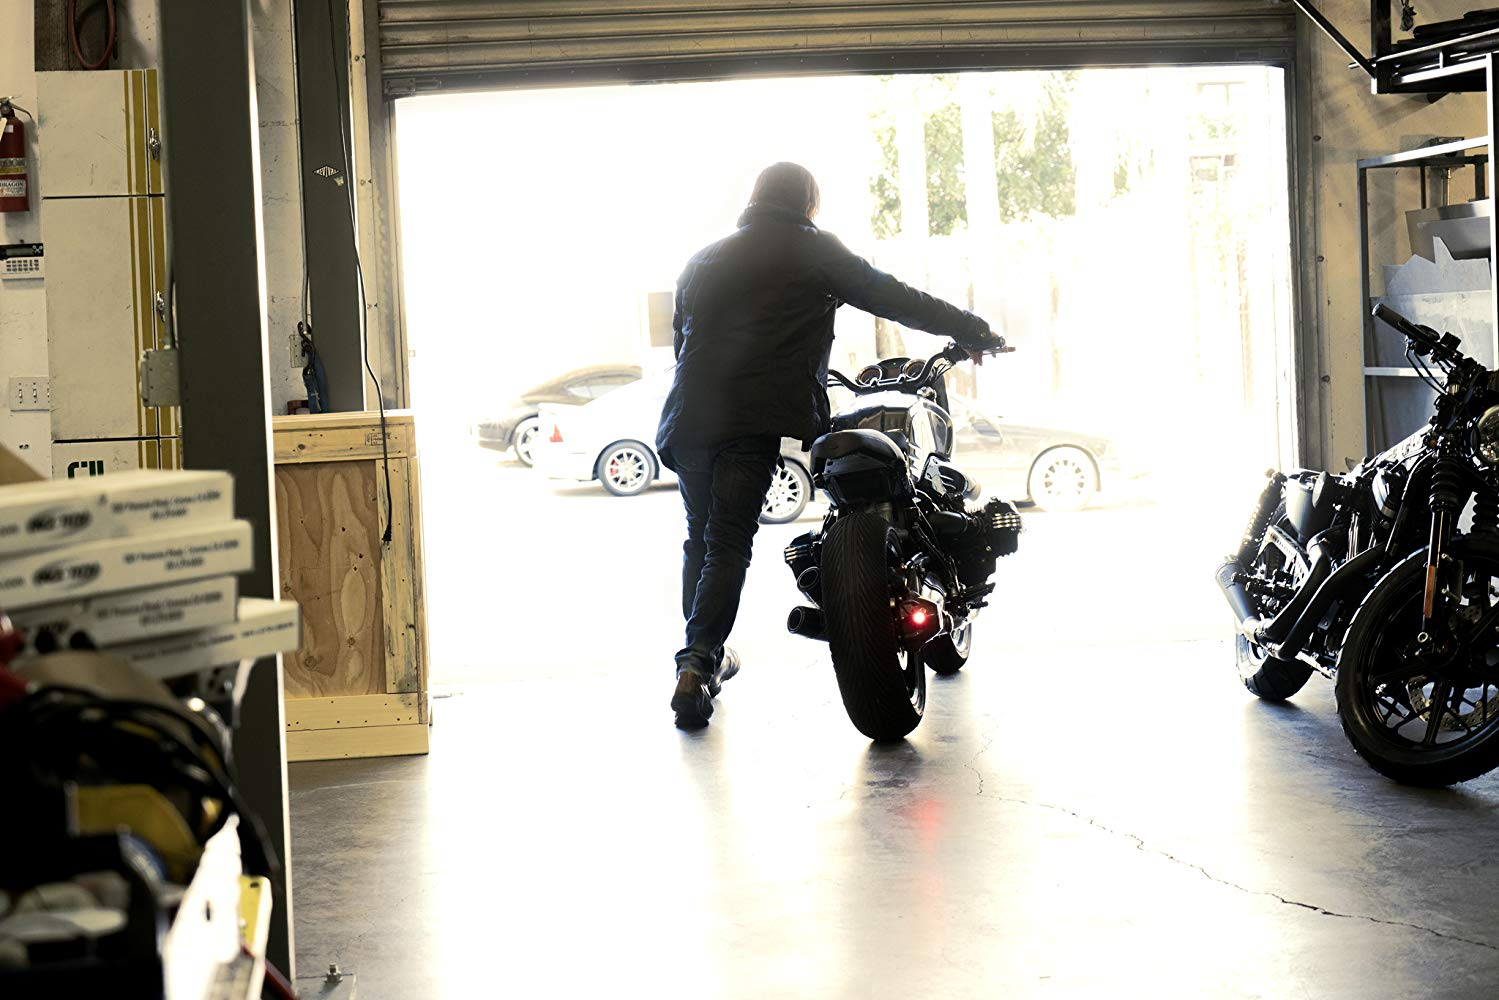 Ride with Norman Reedus - Season 3